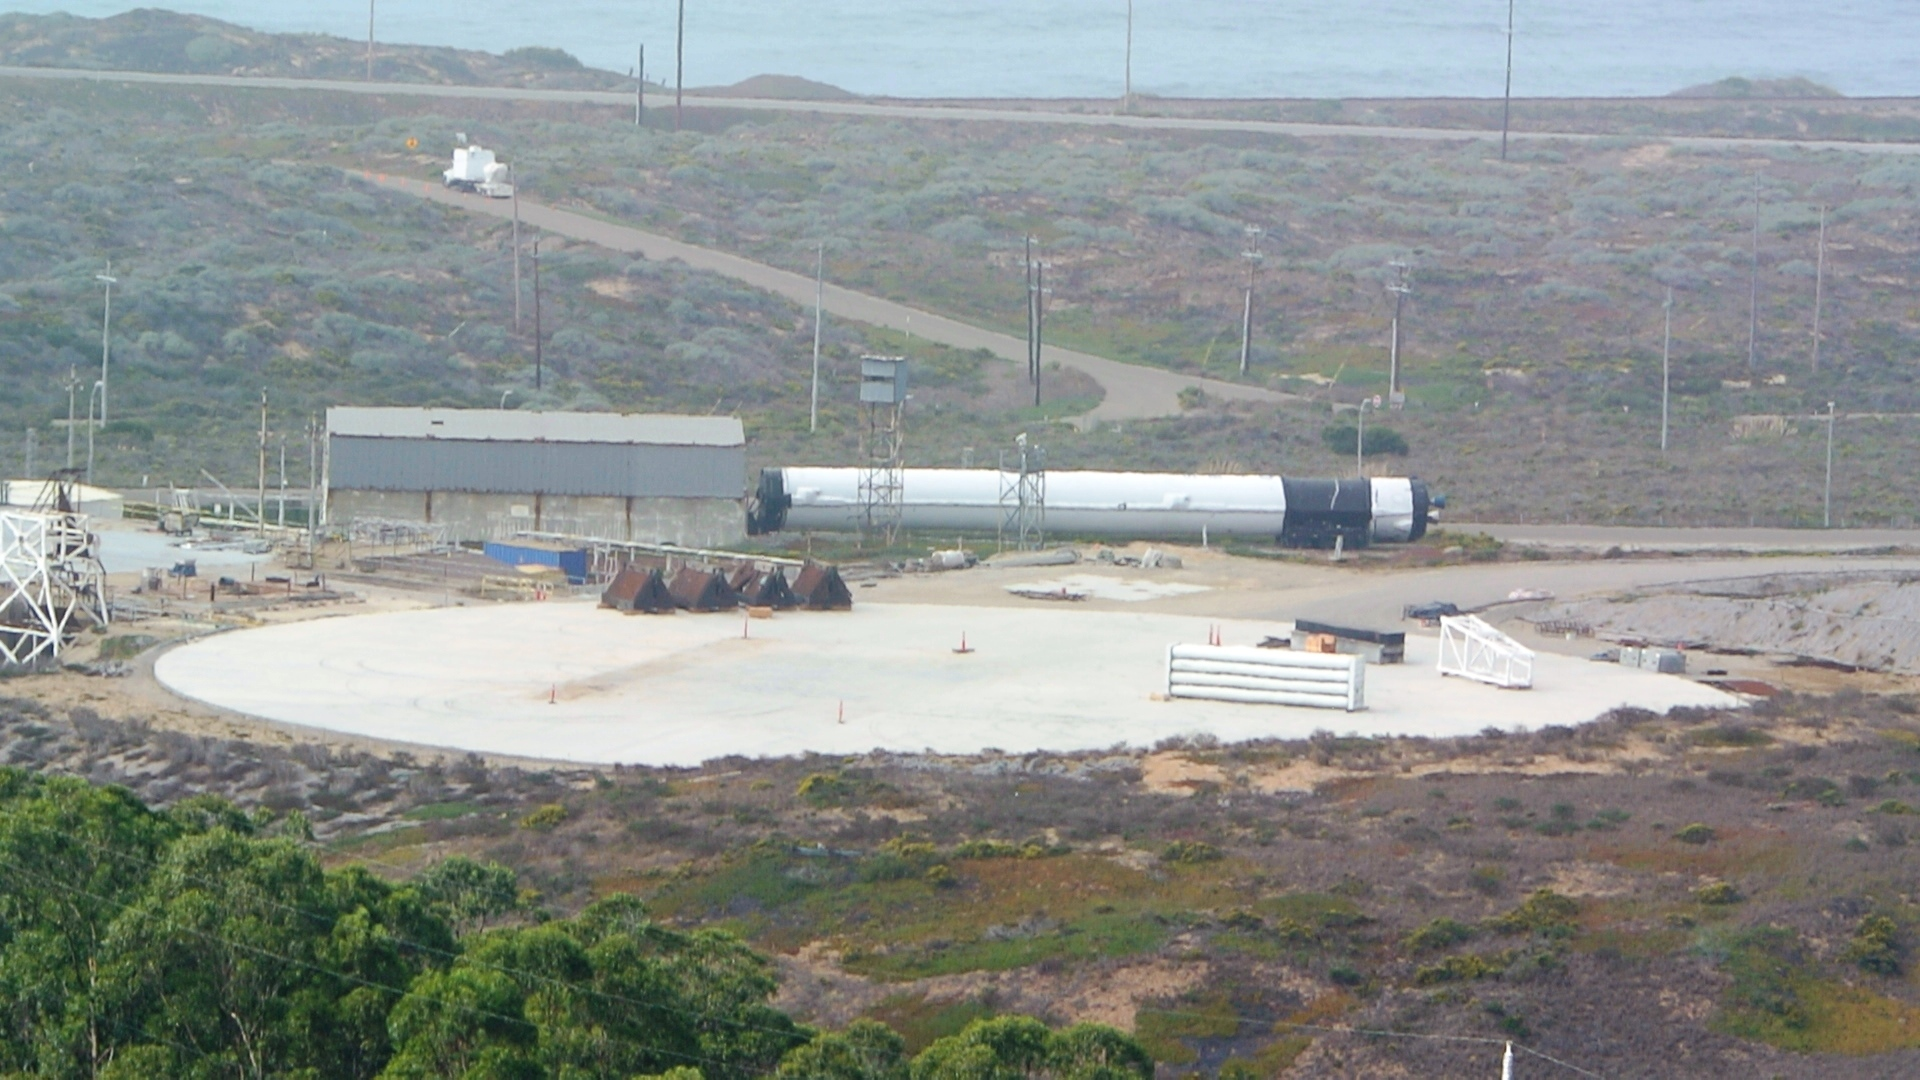 SpaceX Is Getting Ready for Repetitive Launches